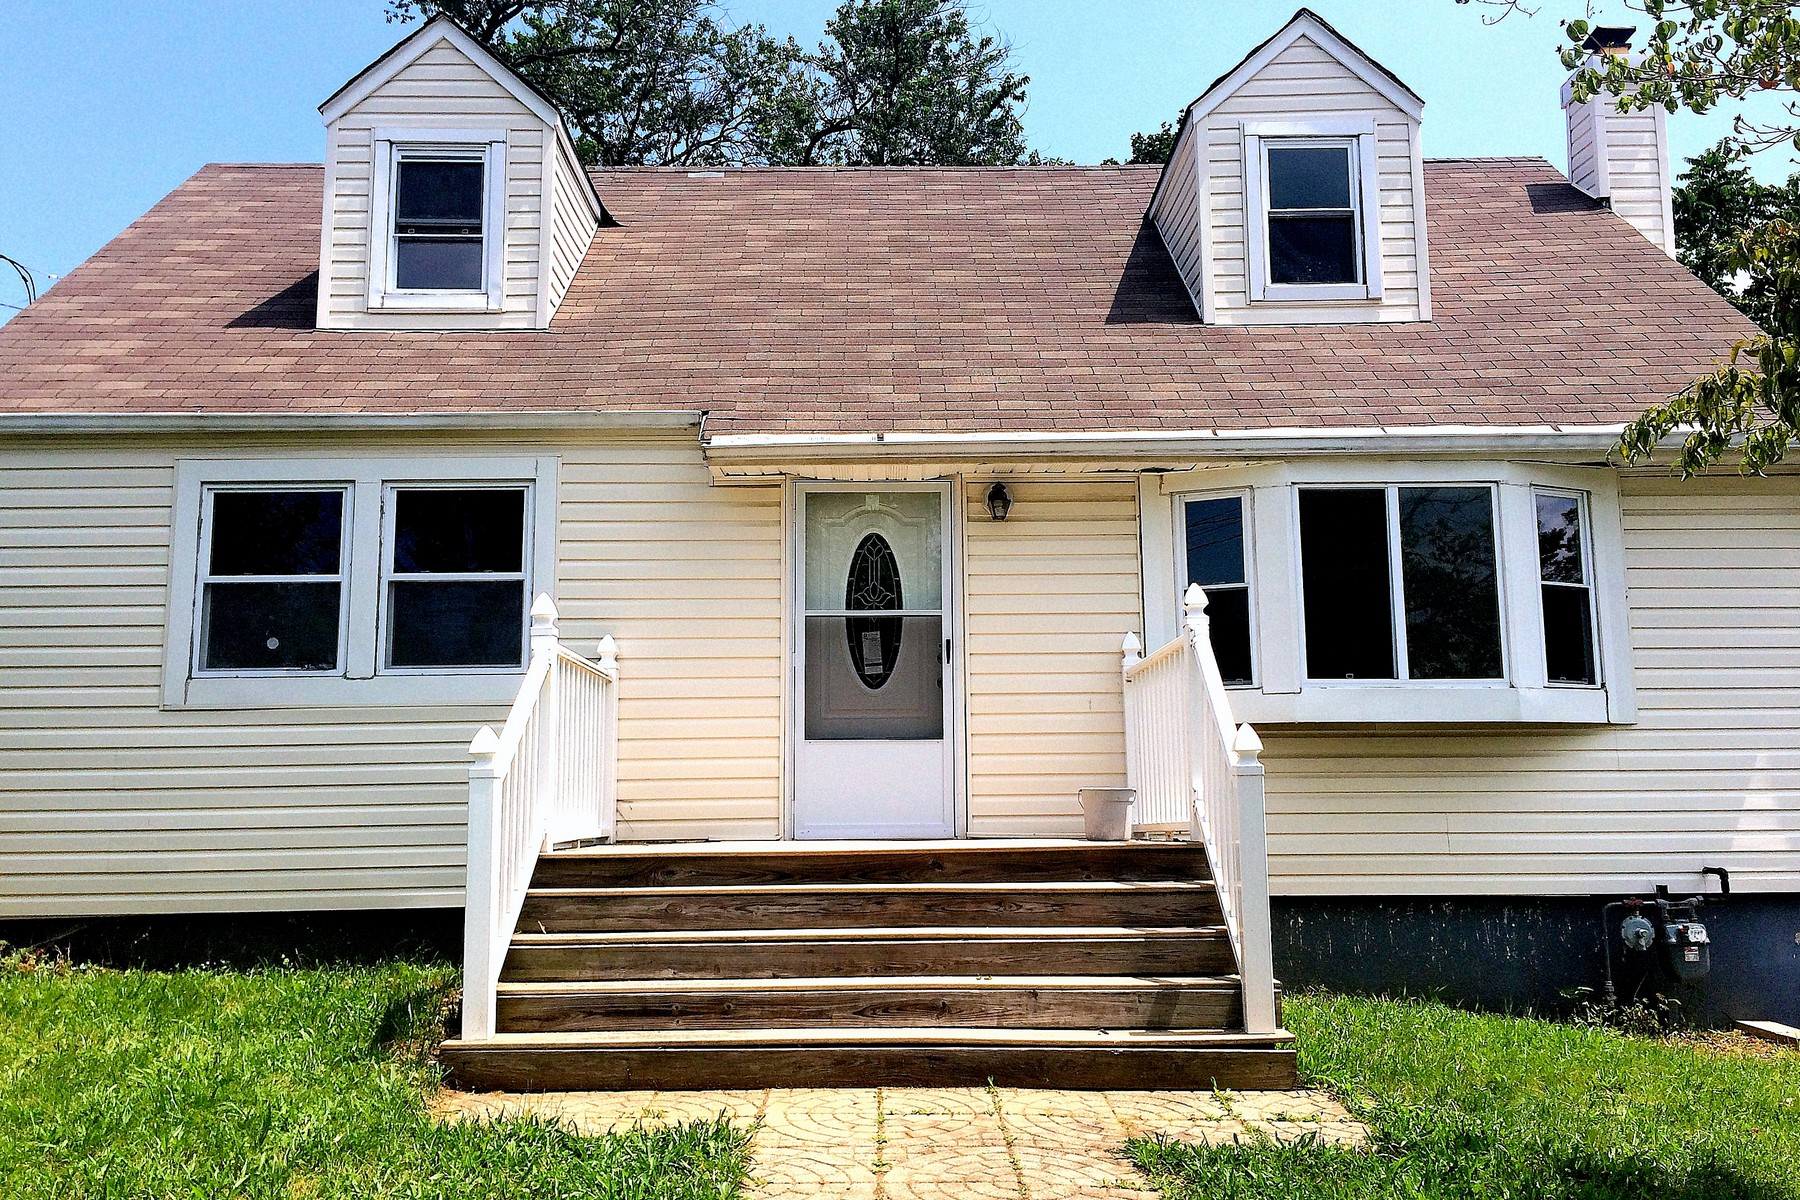 Single Family Home for Sale at Cute Cape! 414 Melrose Way Aberdeen, New Jersey 07747 United States